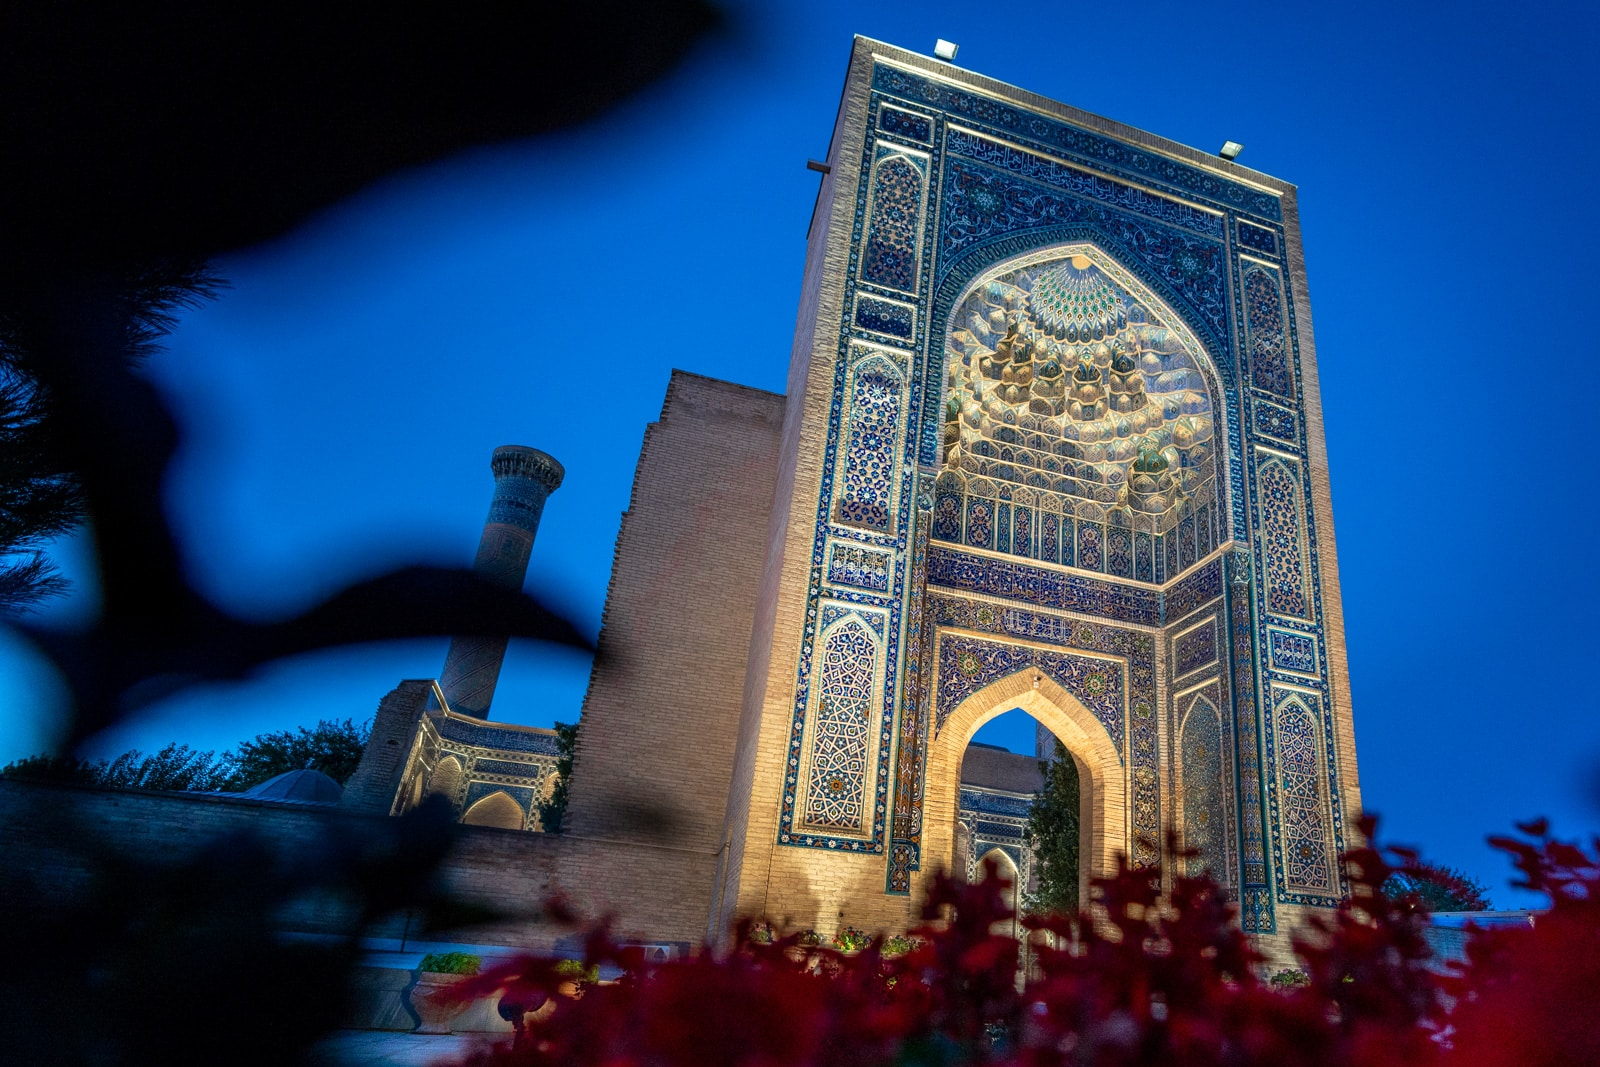 Gur-e-Amir mausoleum during blue hour before sunrise